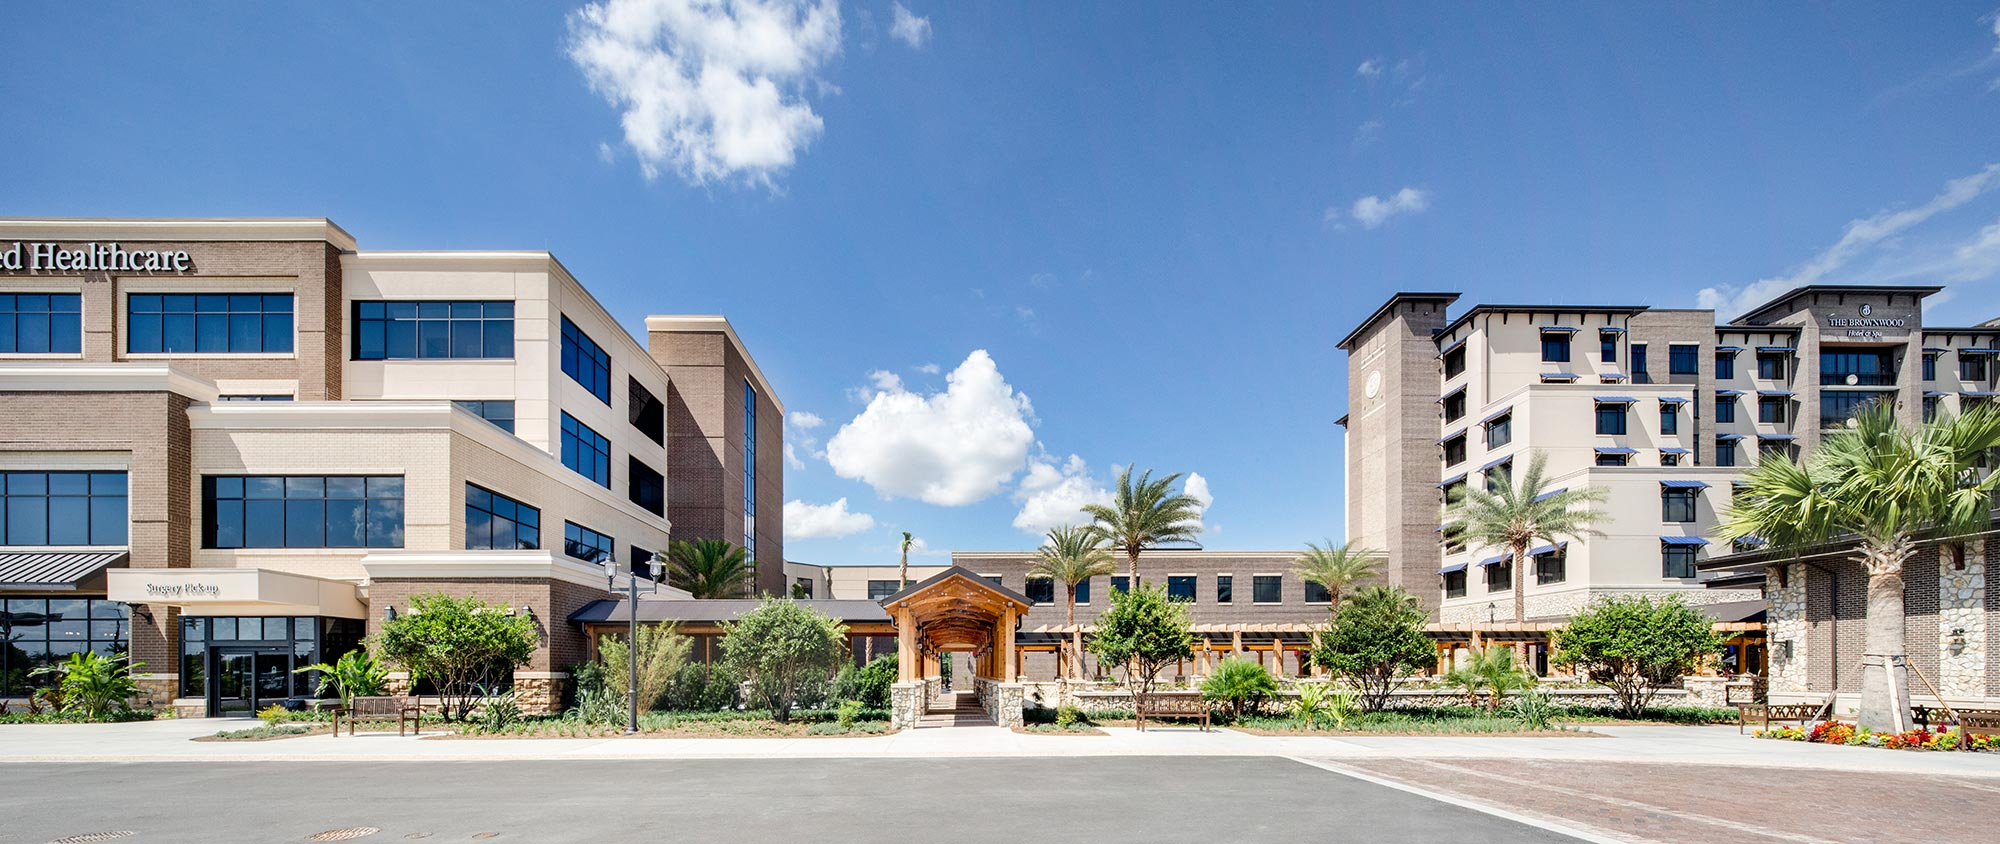 Center for Advanced Healthcare at Brownwood